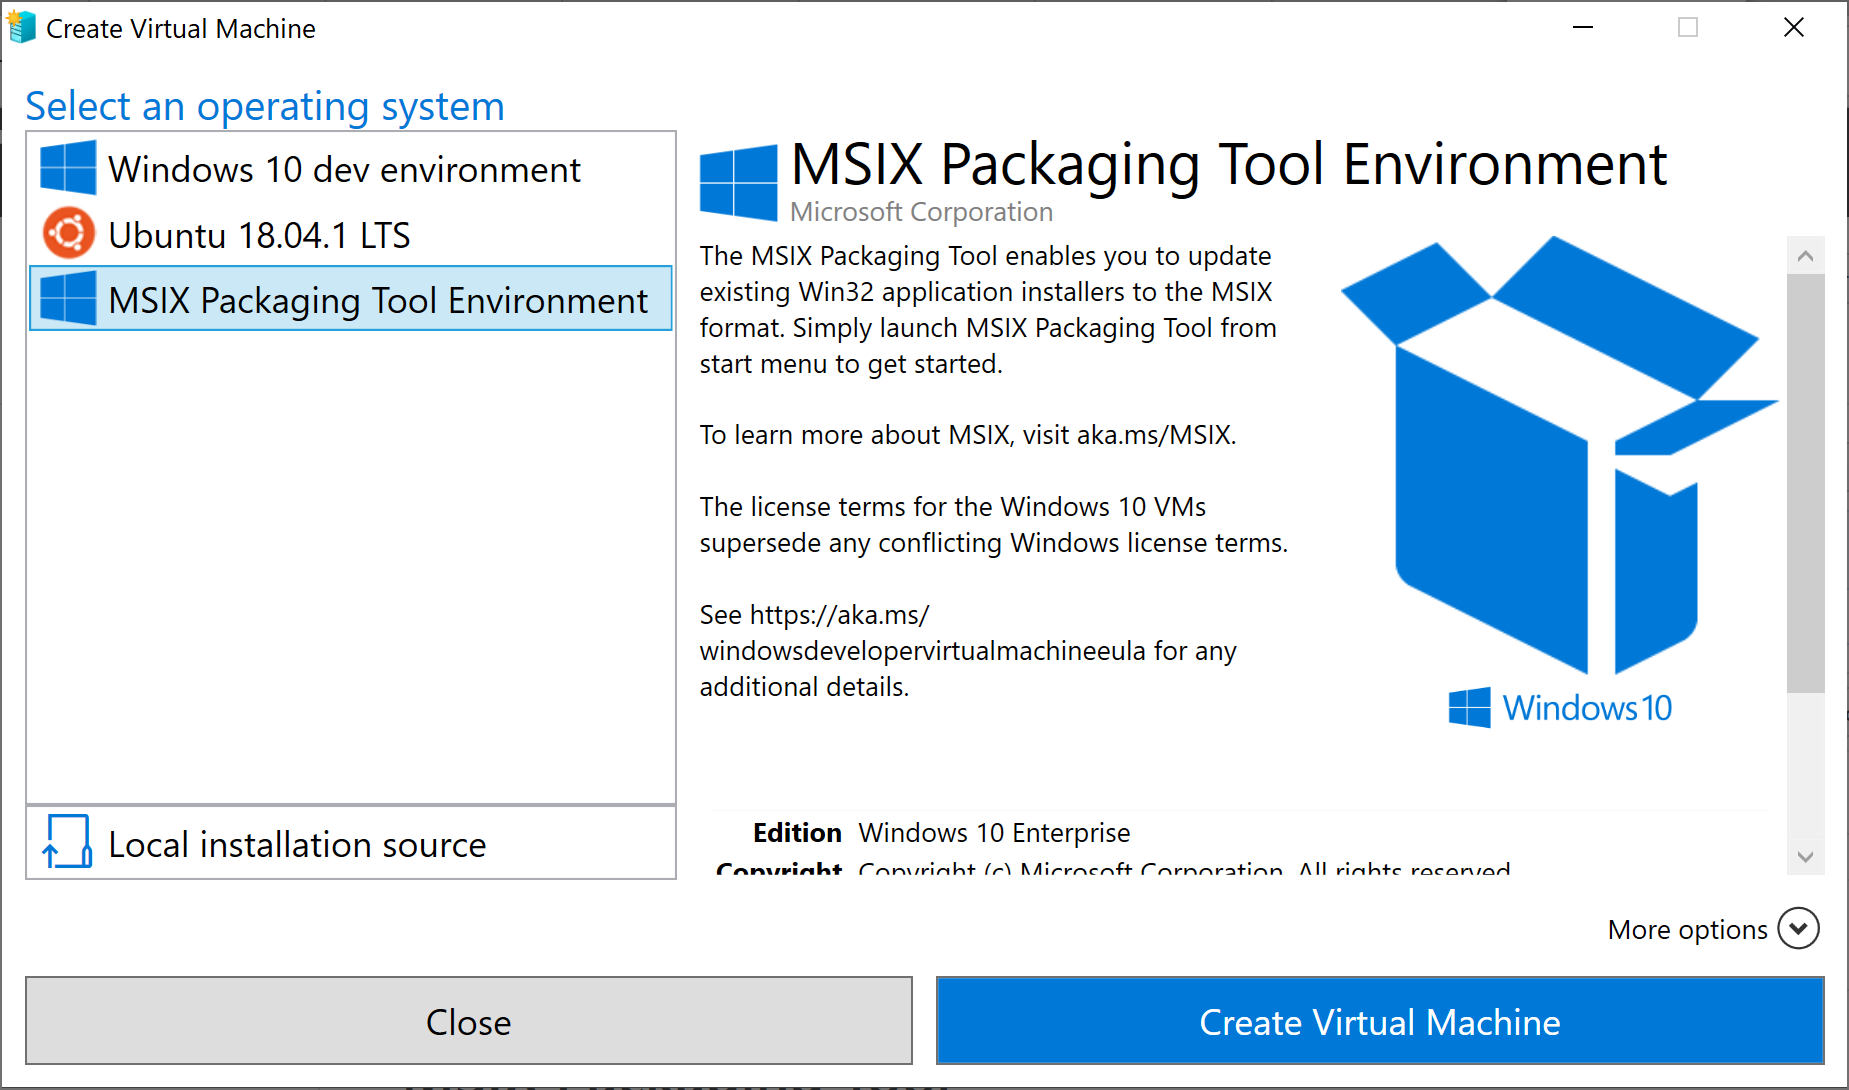 MSIX packaging environment on Hyper-V Quick Create - MSIX